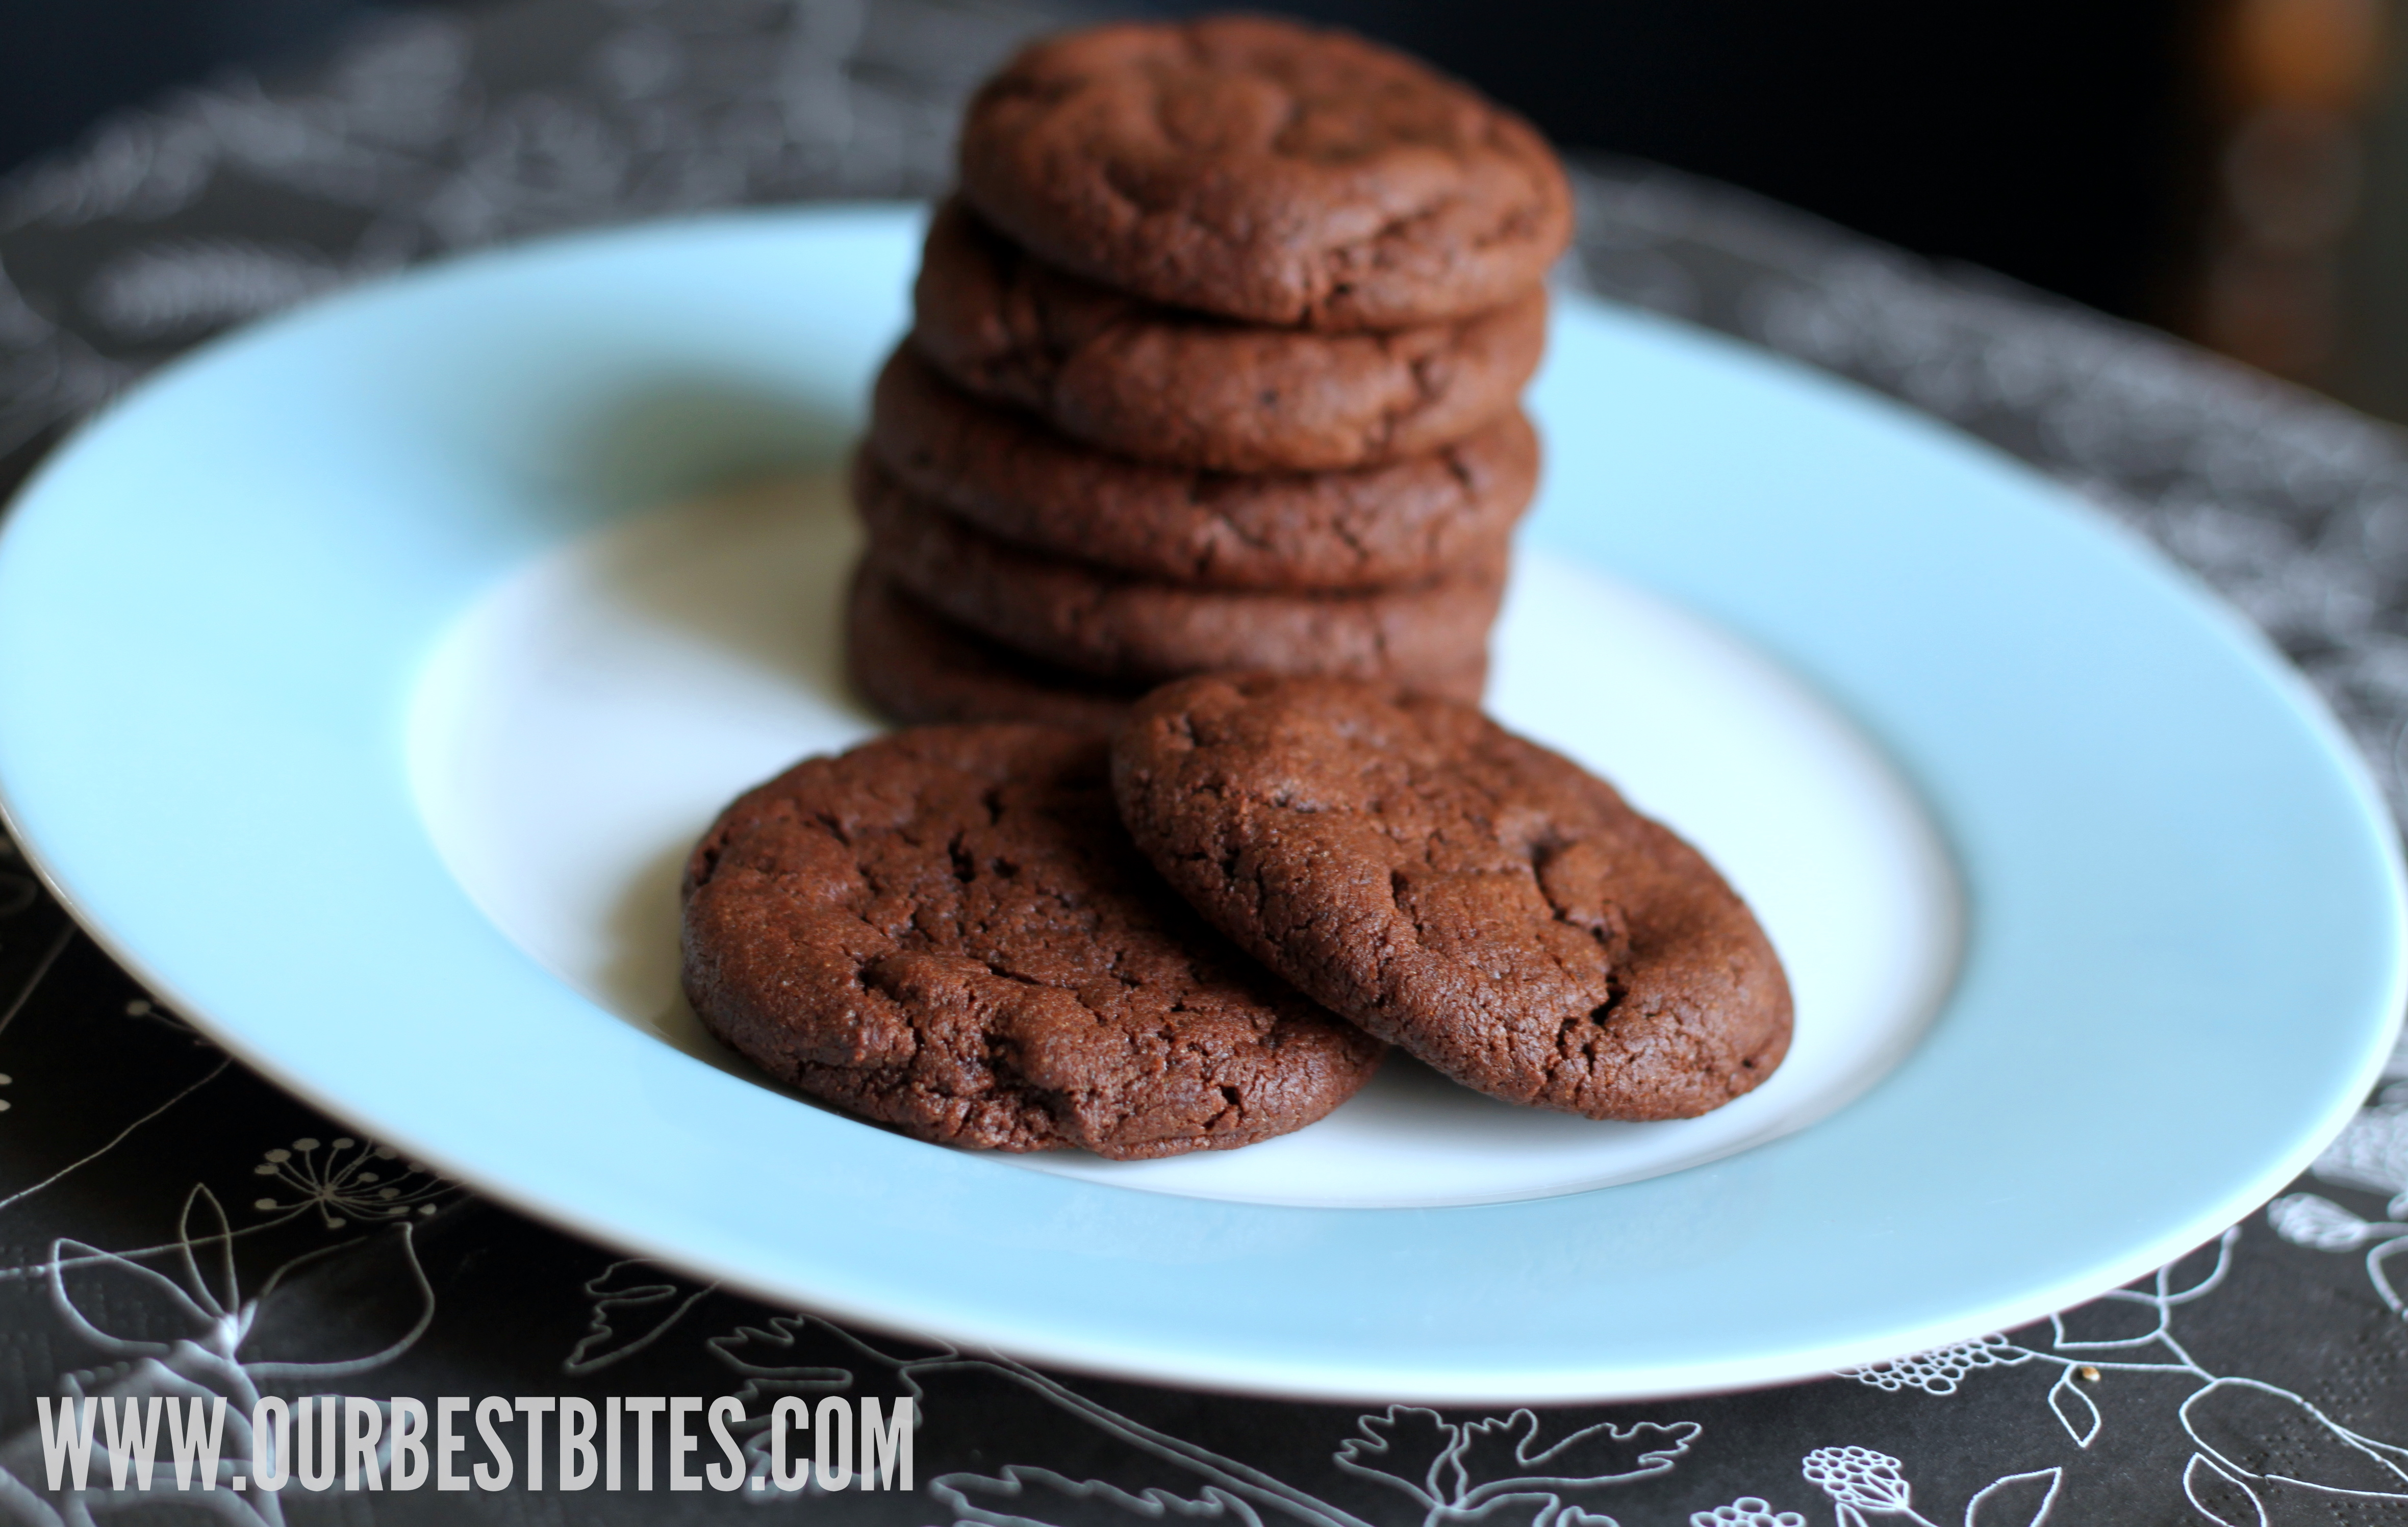 Chocolate Nutella Cookies - Our Best Bites